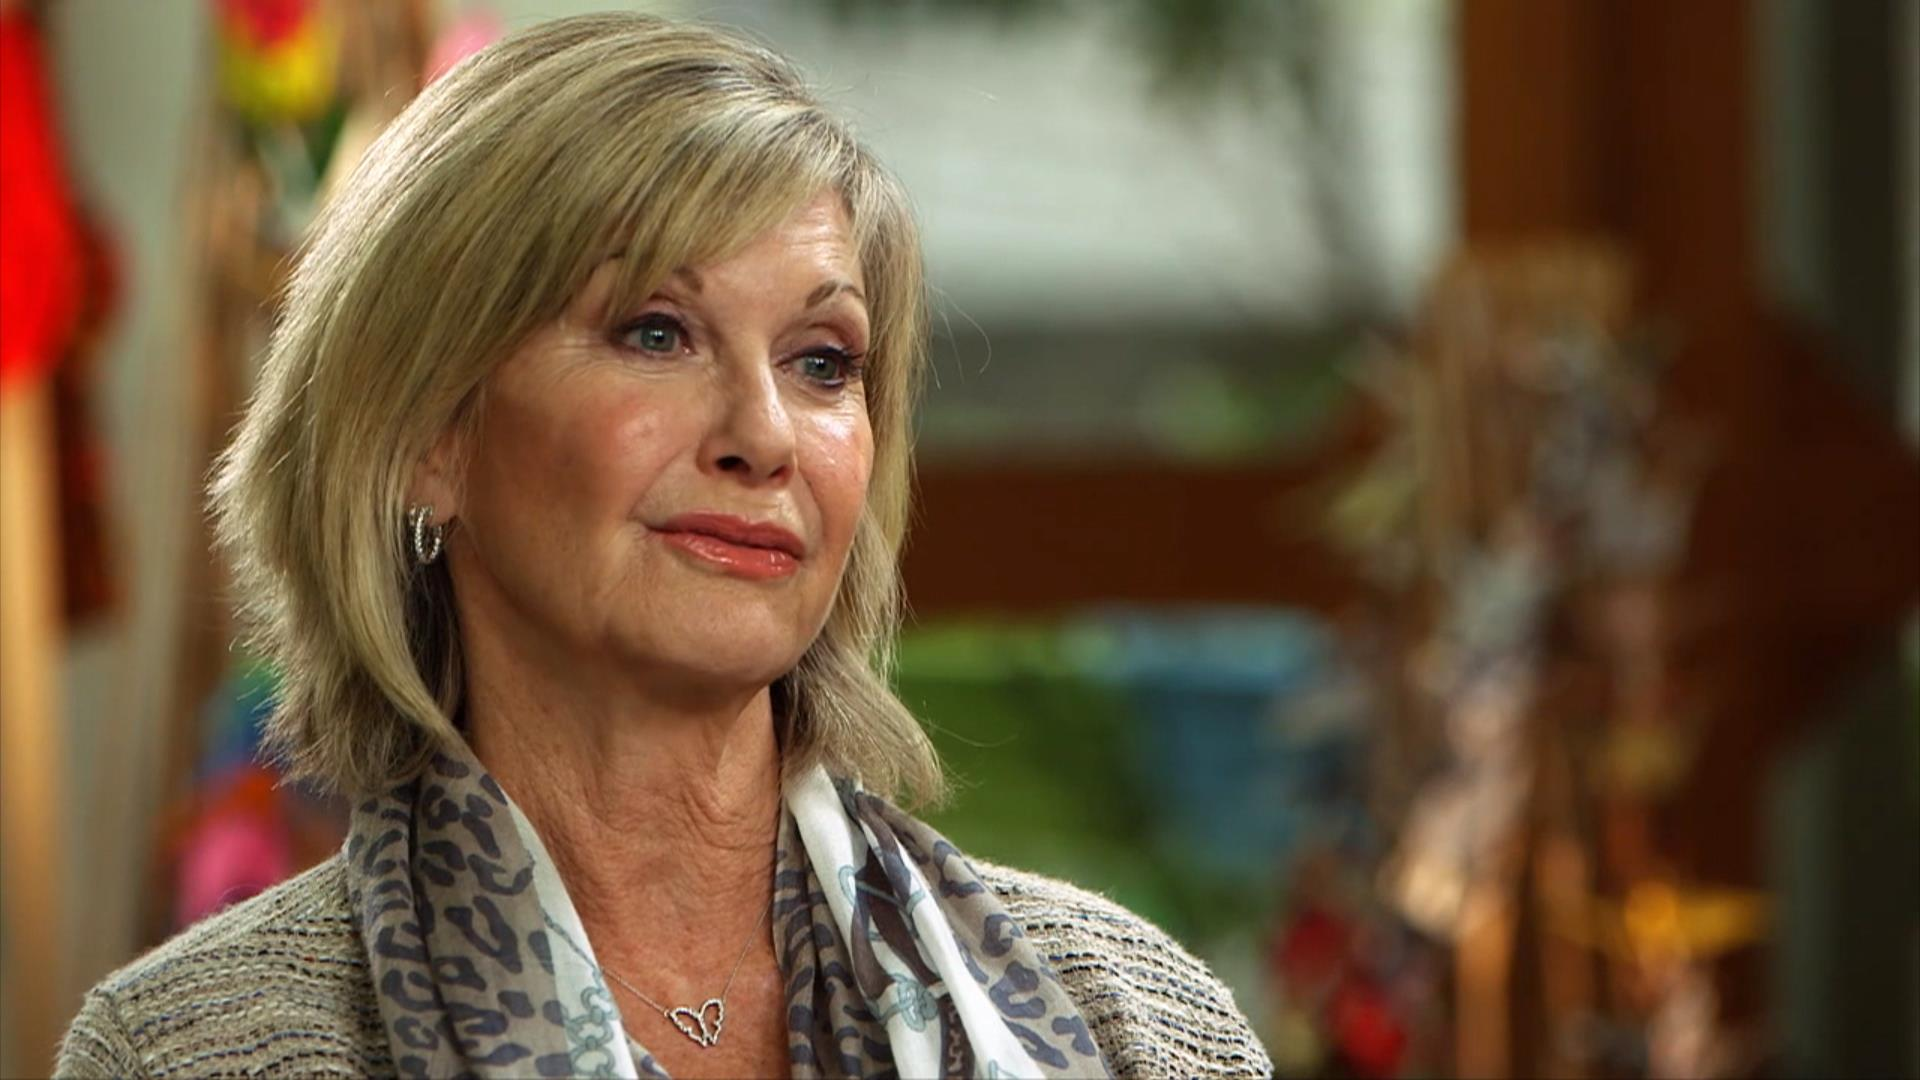 Olivia Newton-John on her second fight with cancer: 'I can do it again'